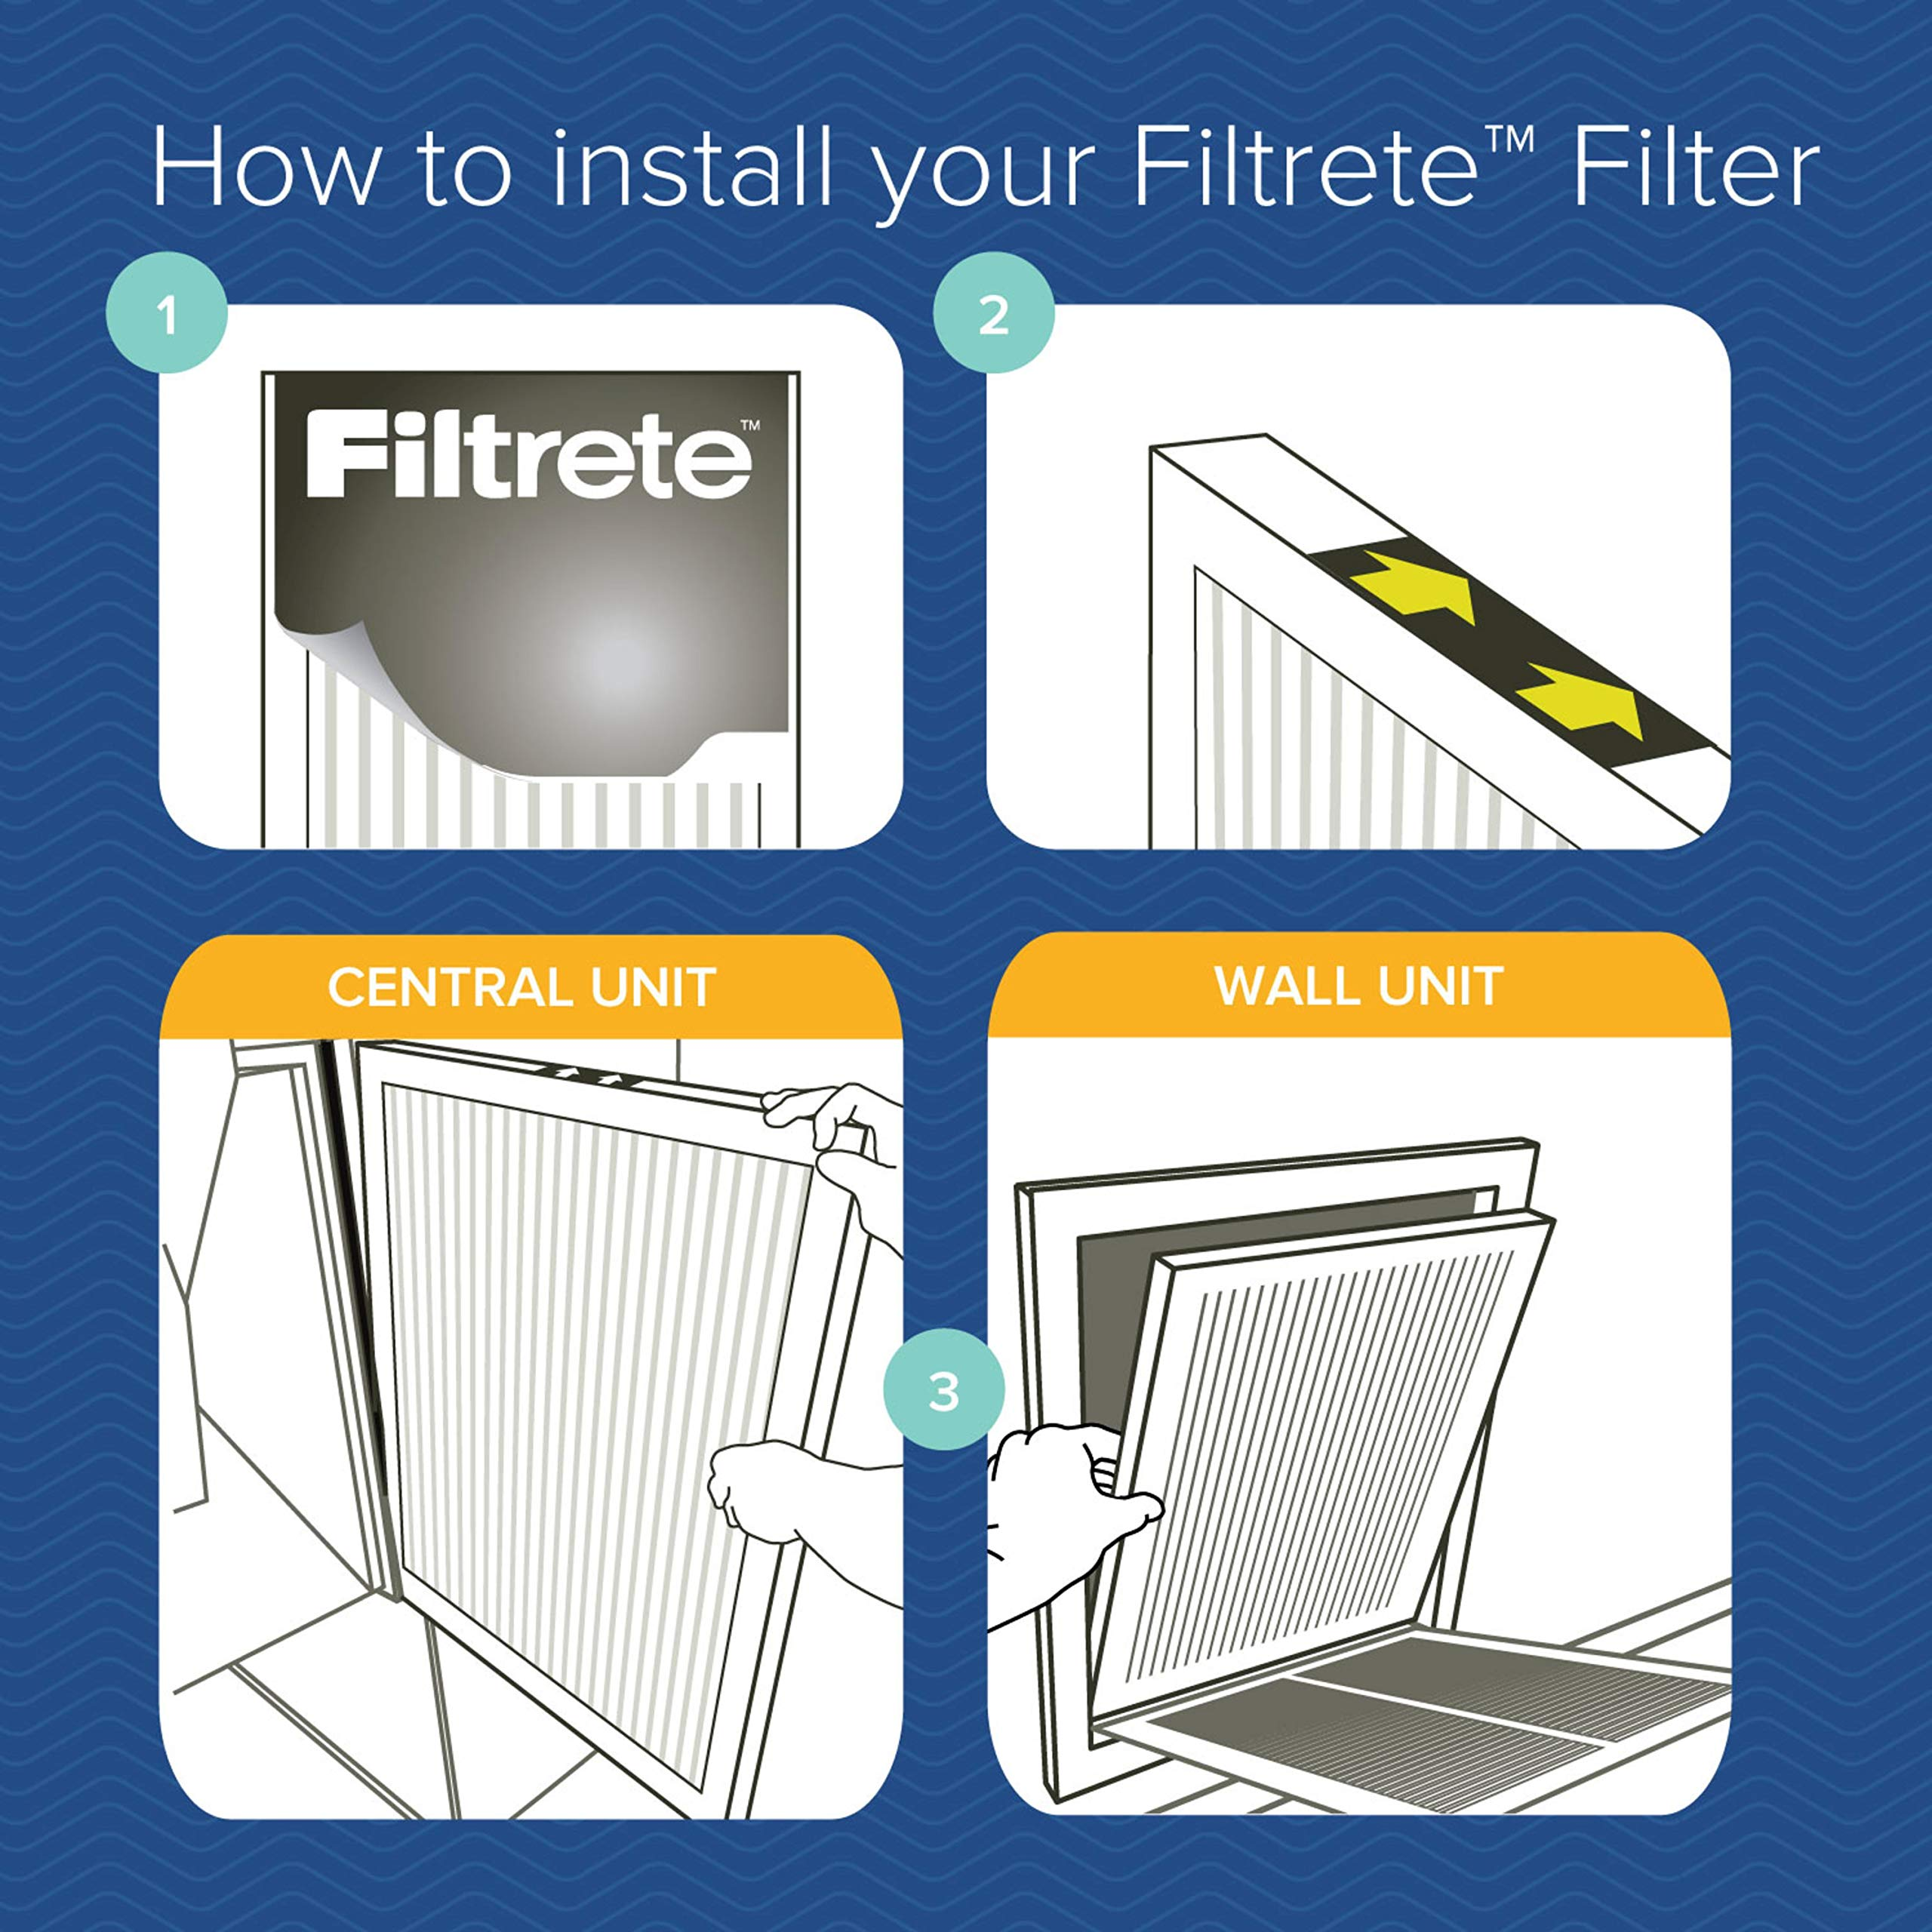 Filtrete 20x20x1, AC Furnace Air Filter, MPR 300, Clean Living Basic Dust, 6-Pack by Filtrete (Image #9)